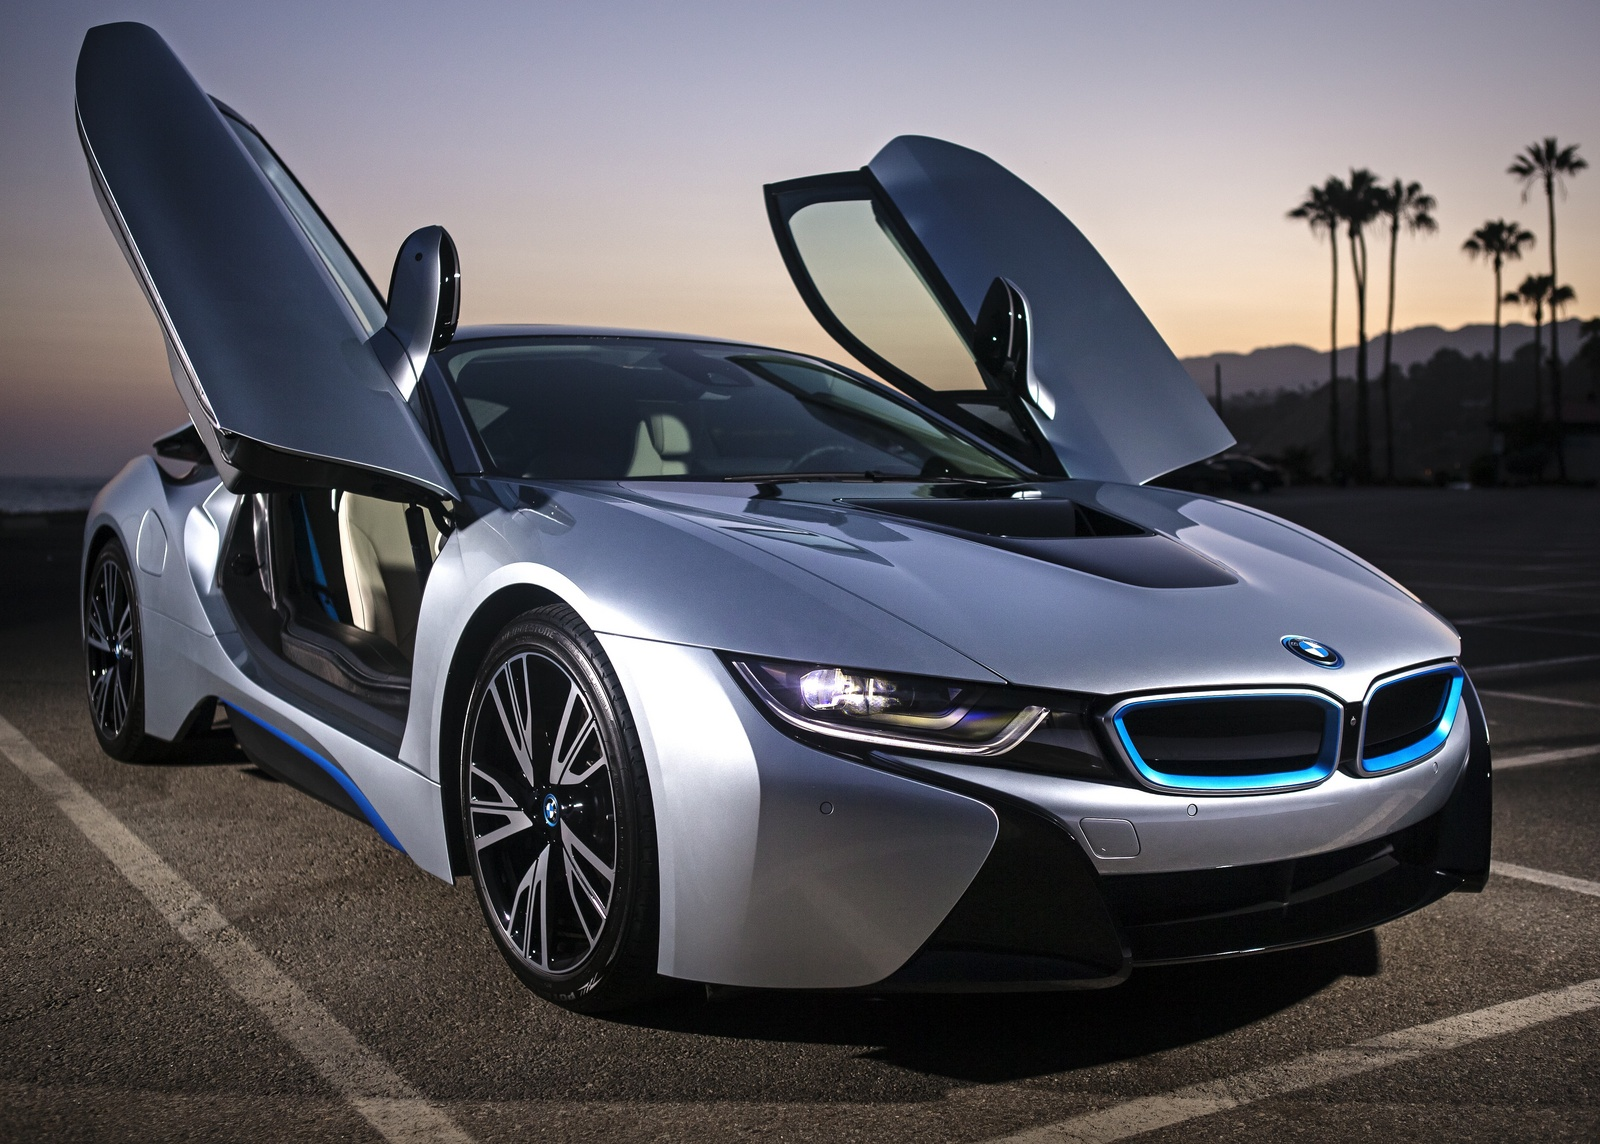 Bmw Dealers In Md >> New 2014 / 2015 BMW i8 For Sale - CarGurus